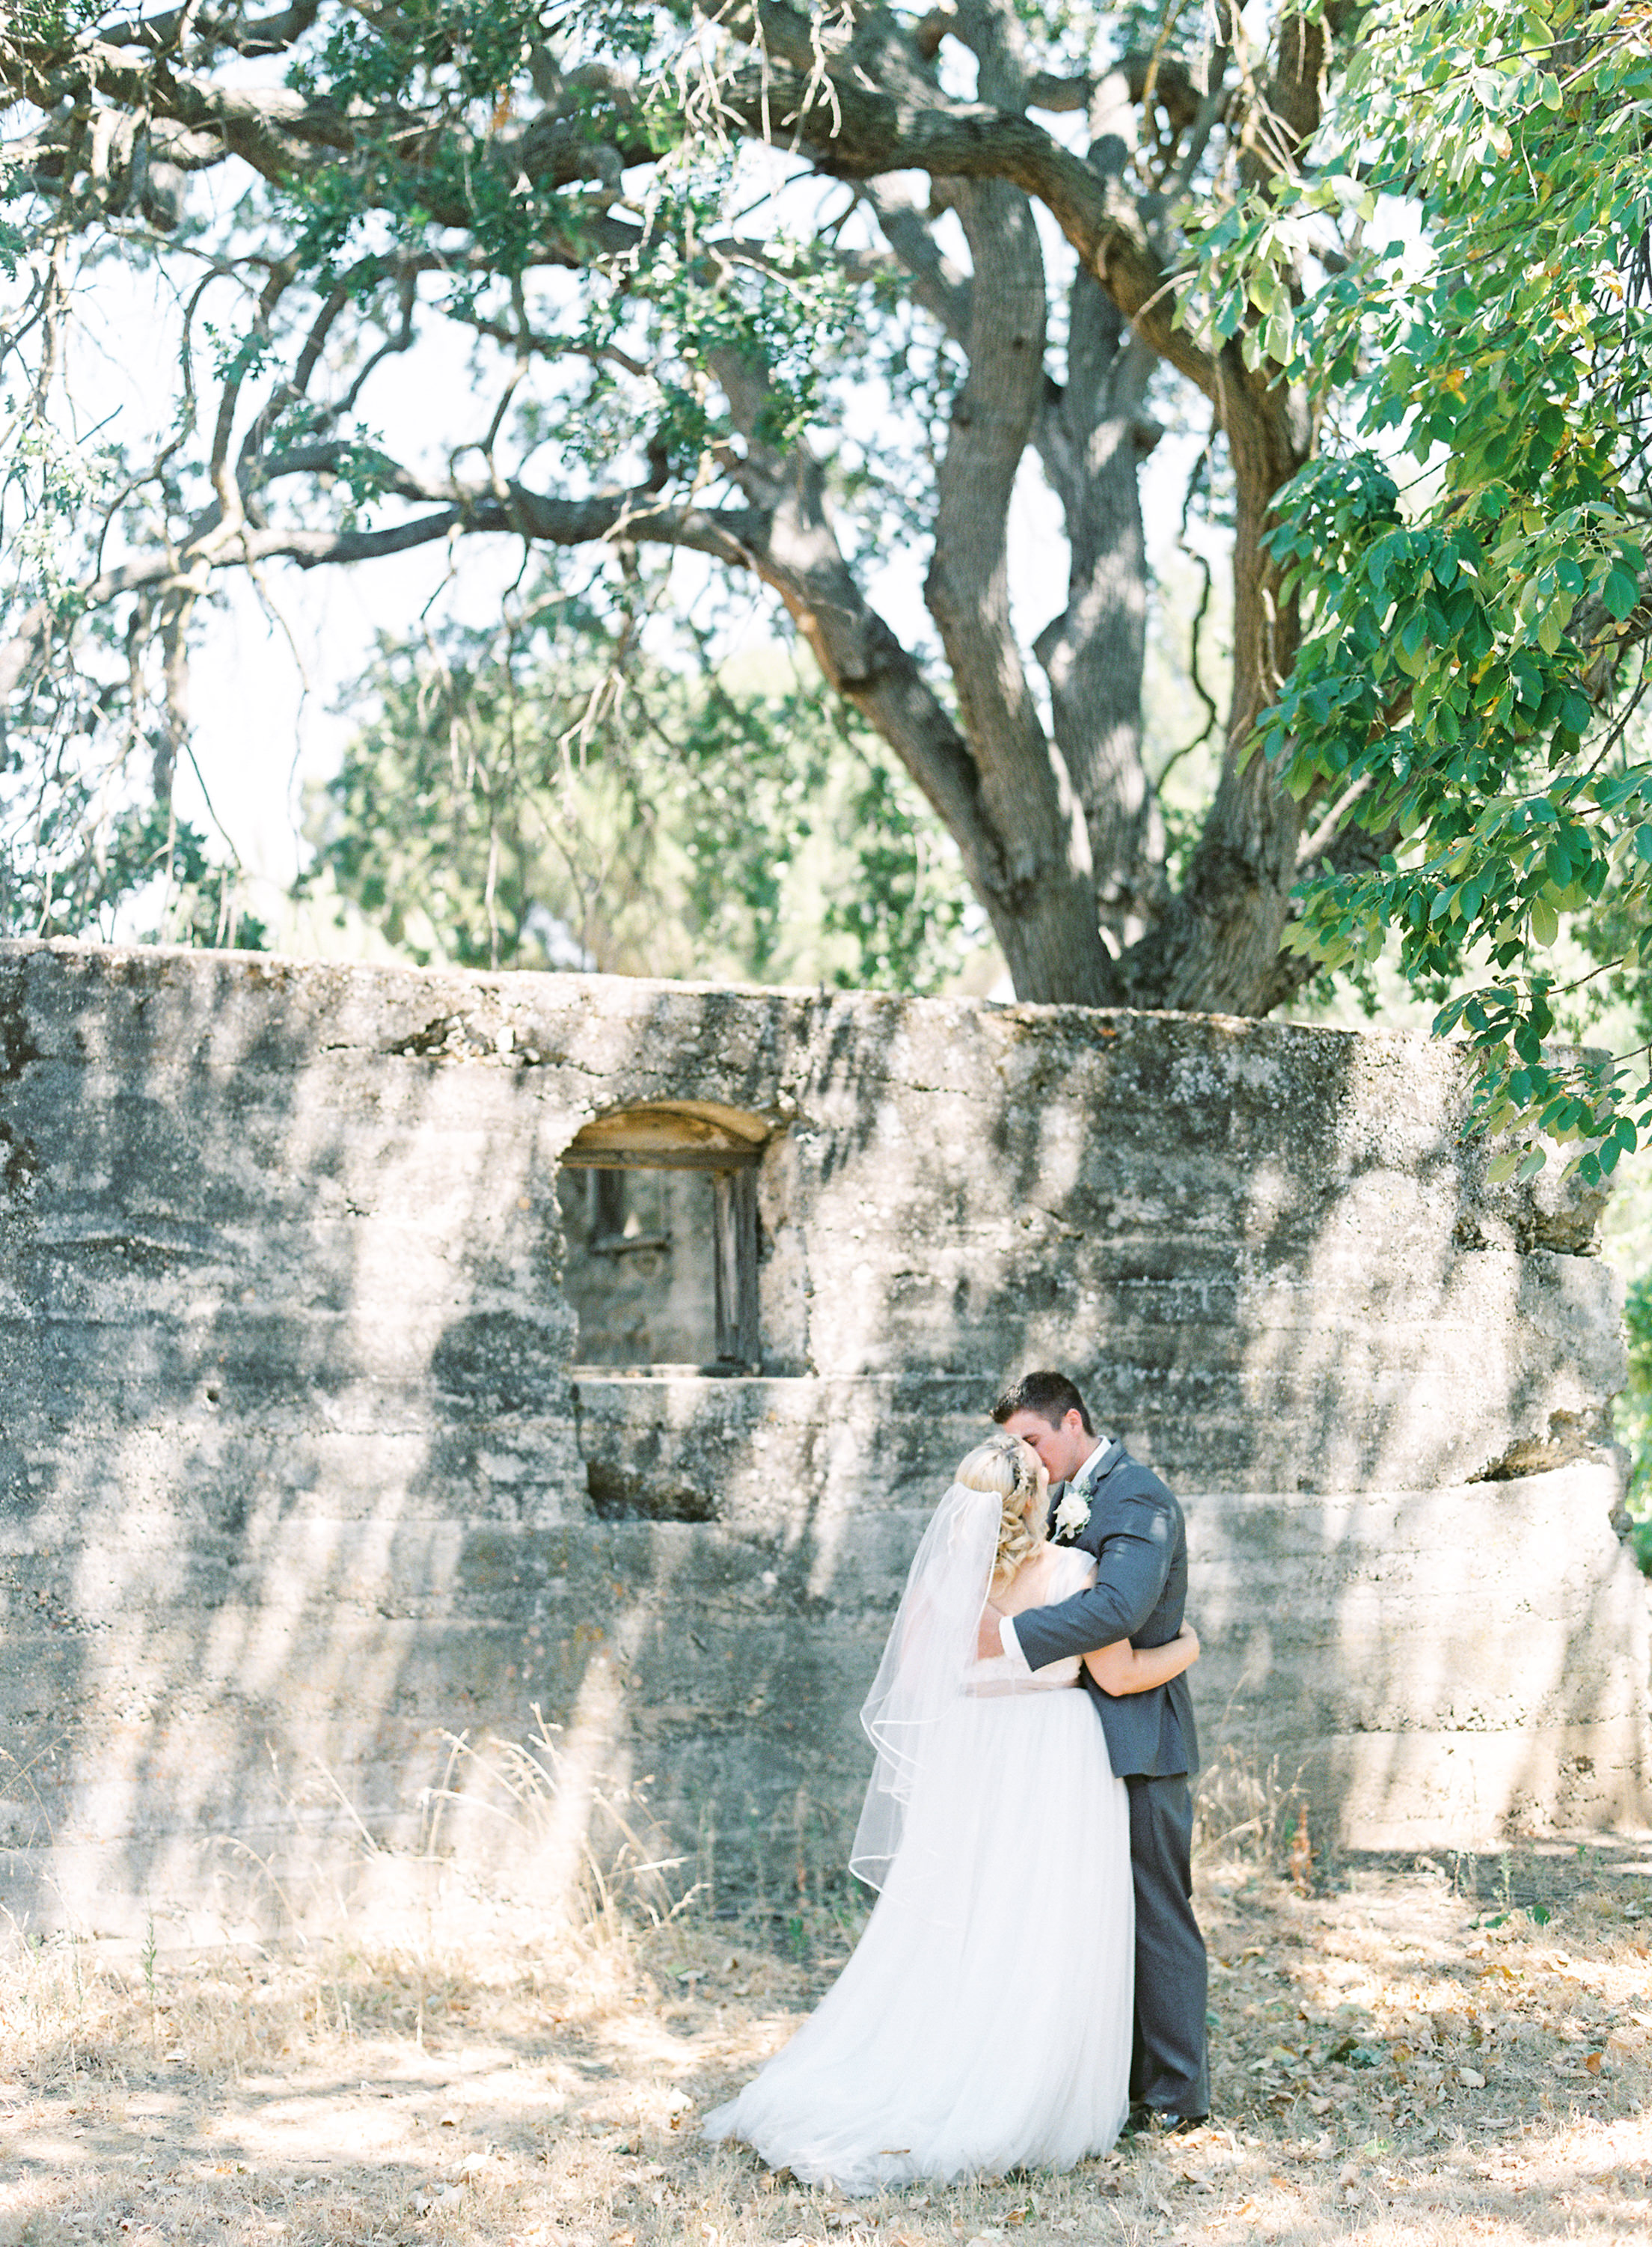 southern-inspired-wedding-at-ravenswood-historic-site-002-5.jpg